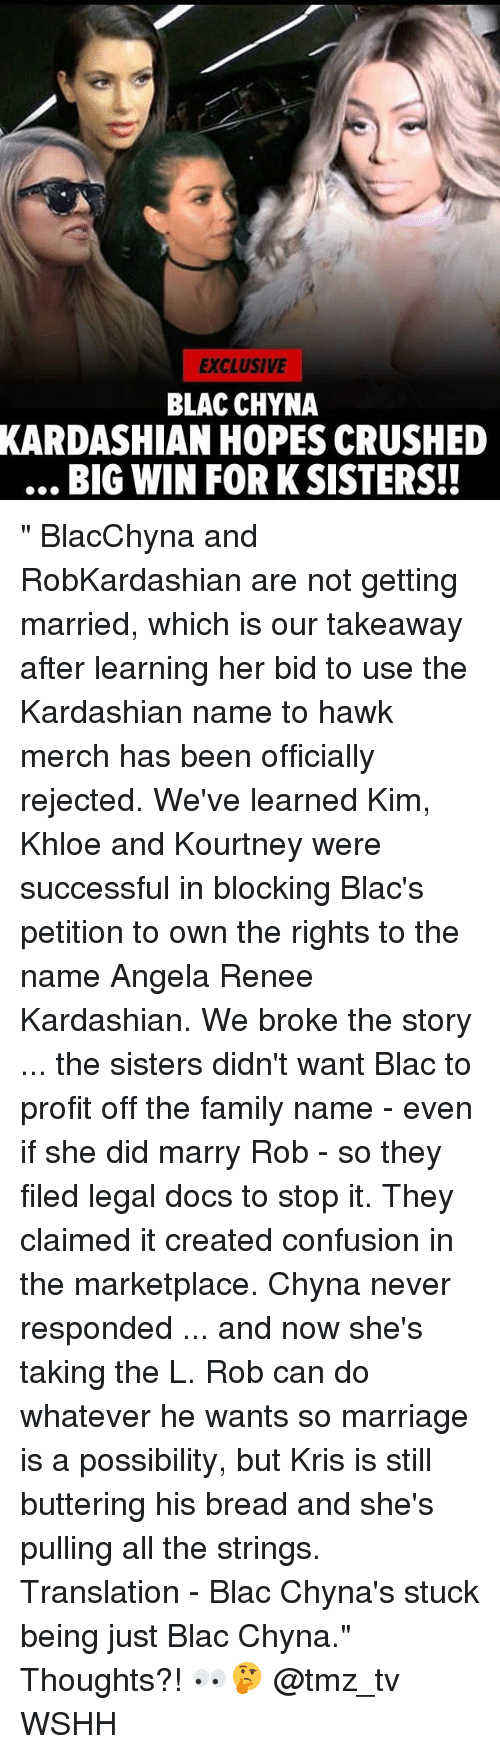 """Blac Chyna, Family, and Marriage: EXCLUSIVE  BLAC CHYNA  KARDASHIAN  HOPES CRUSHED  BIG WIN FOR KSISTERSH """" BlacChyna and RobKardashian are not getting married, which is our takeaway after learning her bid to use the Kardashian name to hawk merch has been officially rejected. We've learned Kim, Khloe and Kourtney were successful in blocking Blac's petition to own the rights to the name Angela Renee Kardashian. We broke the story ... the sisters didn't want Blac to profit off the family name - even if she did marry Rob - so they filed legal docs to stop it. They claimed it created confusion in the marketplace. Chyna never responded ... and now she's taking the L. Rob can do whatever he wants so marriage is a possibility, but Kris is still buttering his bread and she's pulling all the strings. Translation - Blac Chyna's stuck being just Blac Chyna."""" Thoughts?! 👀🤔 @tmz_tv WSHH"""